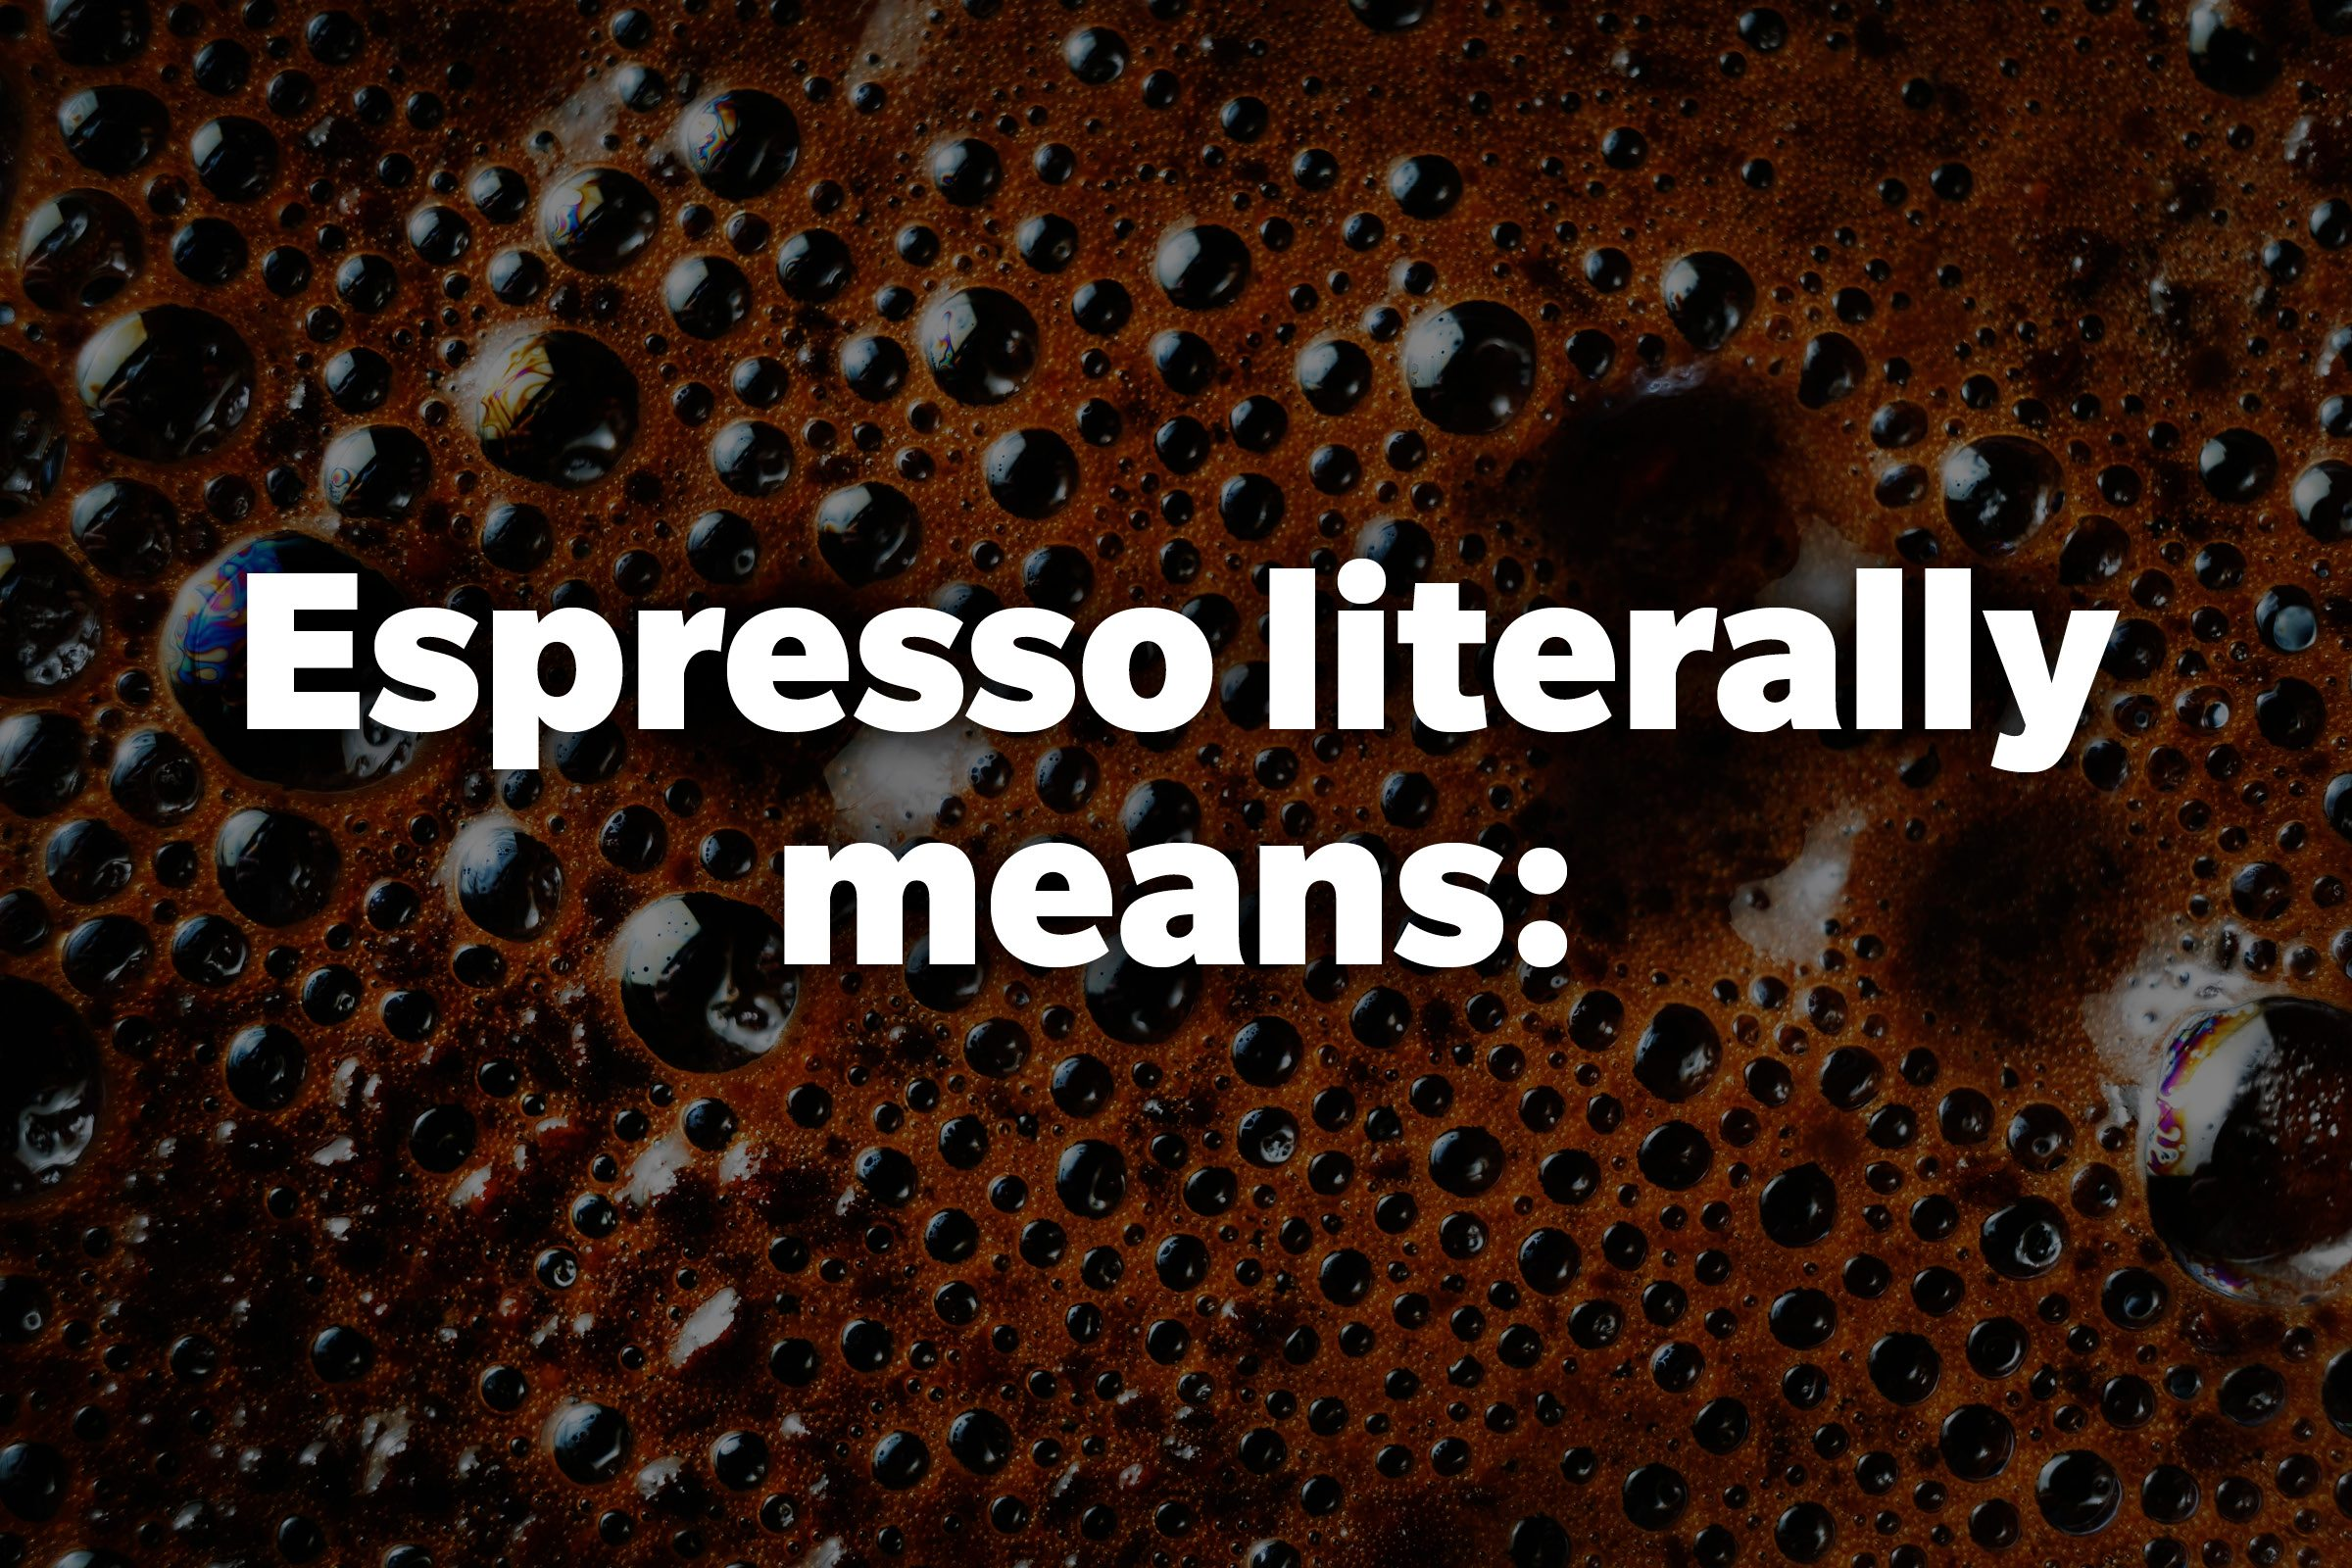 Espresso literally means: